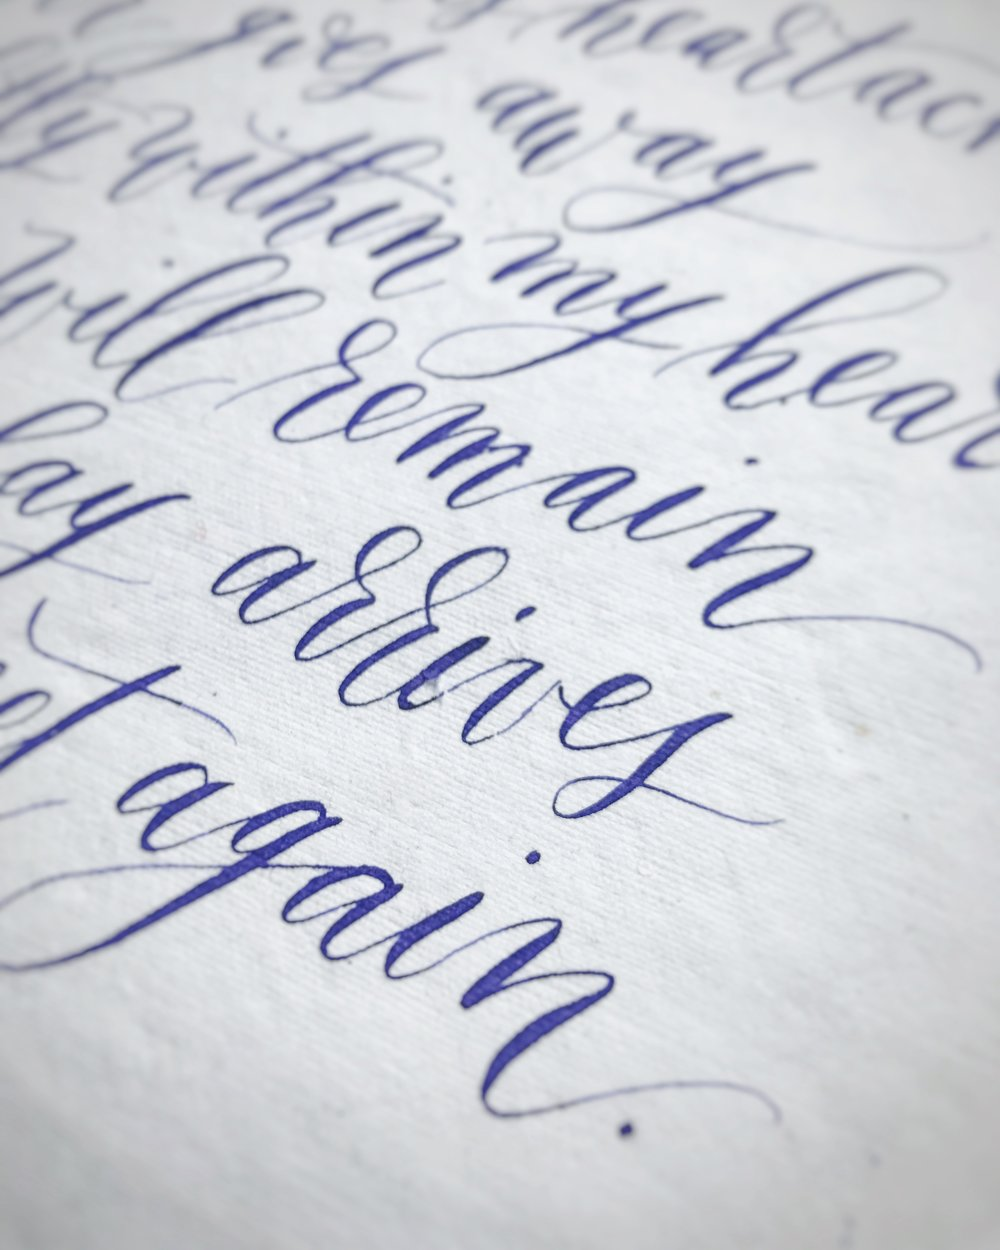 blue ink close up.JPG